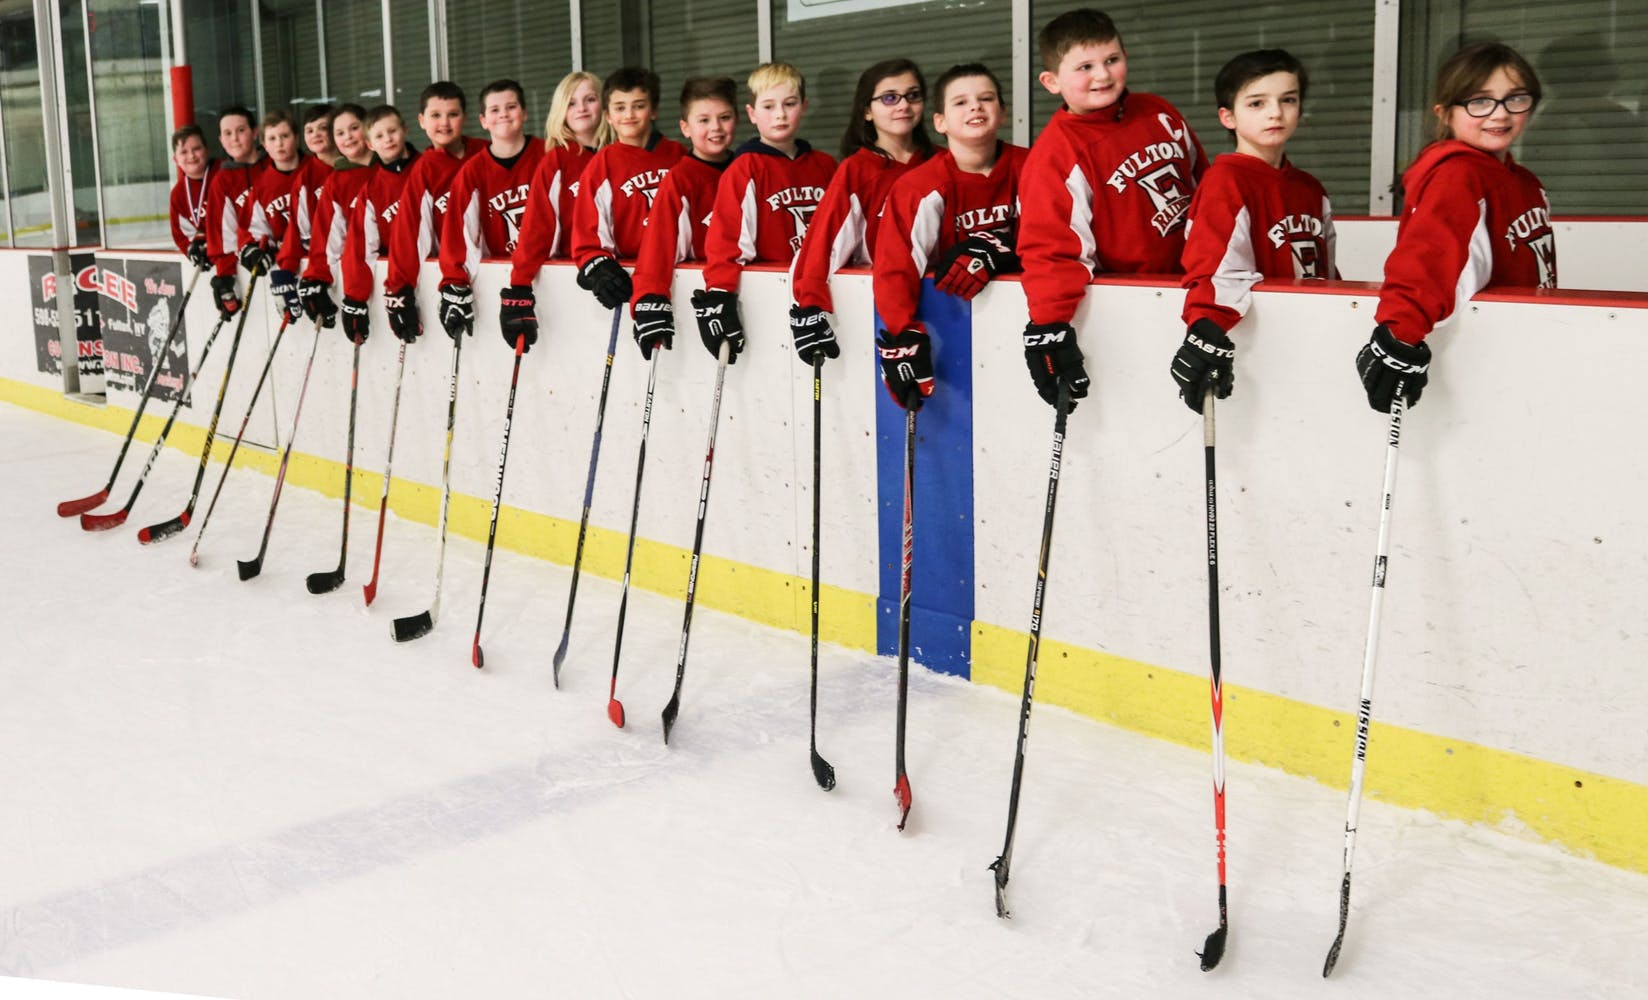 hockey grant - The fulton squirts